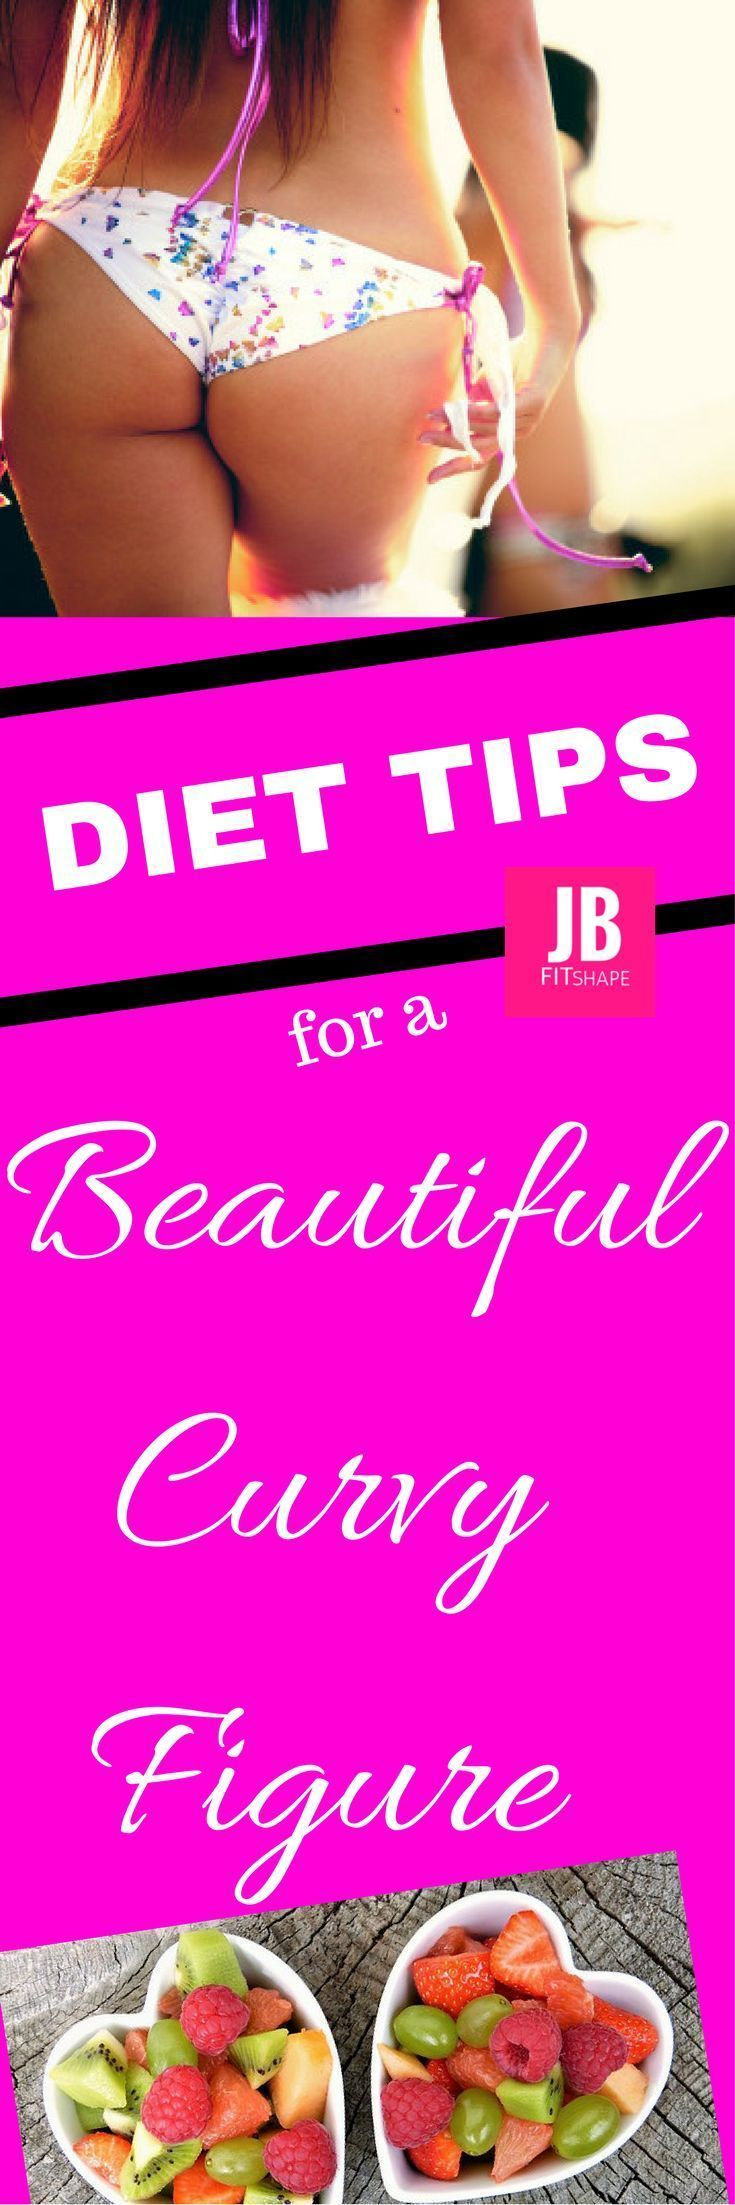 Diet Tips for a Beautiful Curvy Figure Diet | Weight Loss | Healthy Habits | Motivation   https://jbfitshape.wordpress.com/2017/06/10/diet-tips-for-a-beautiful-curvy-figure/